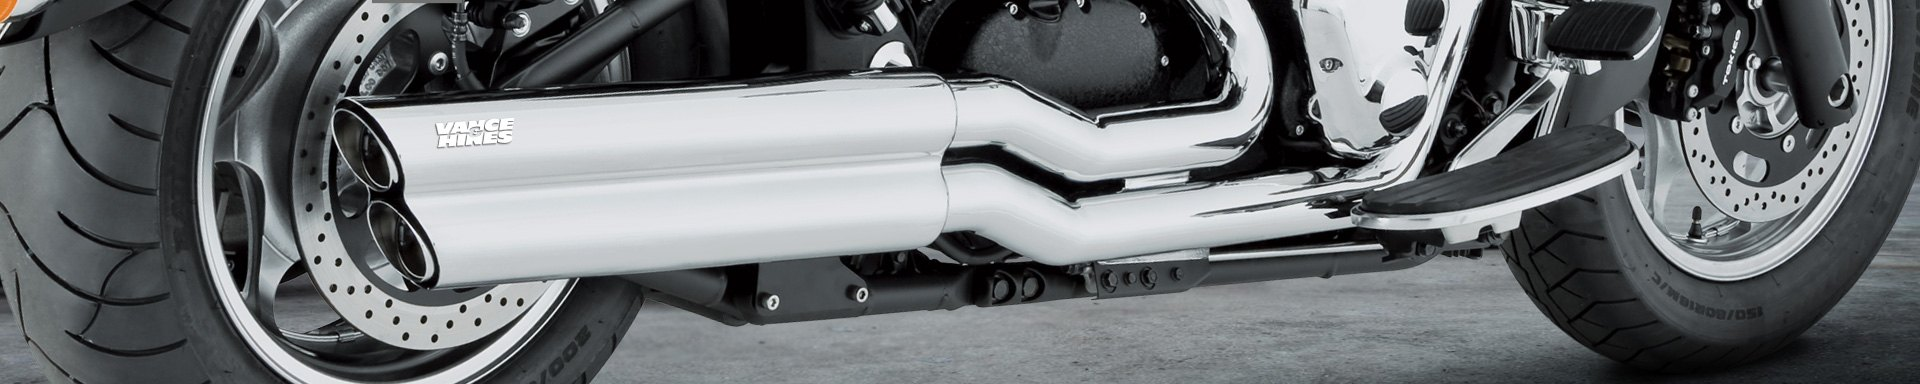 Vance & Hines™ | Motorcycle Exhaust at MOTORCYCLEiD com